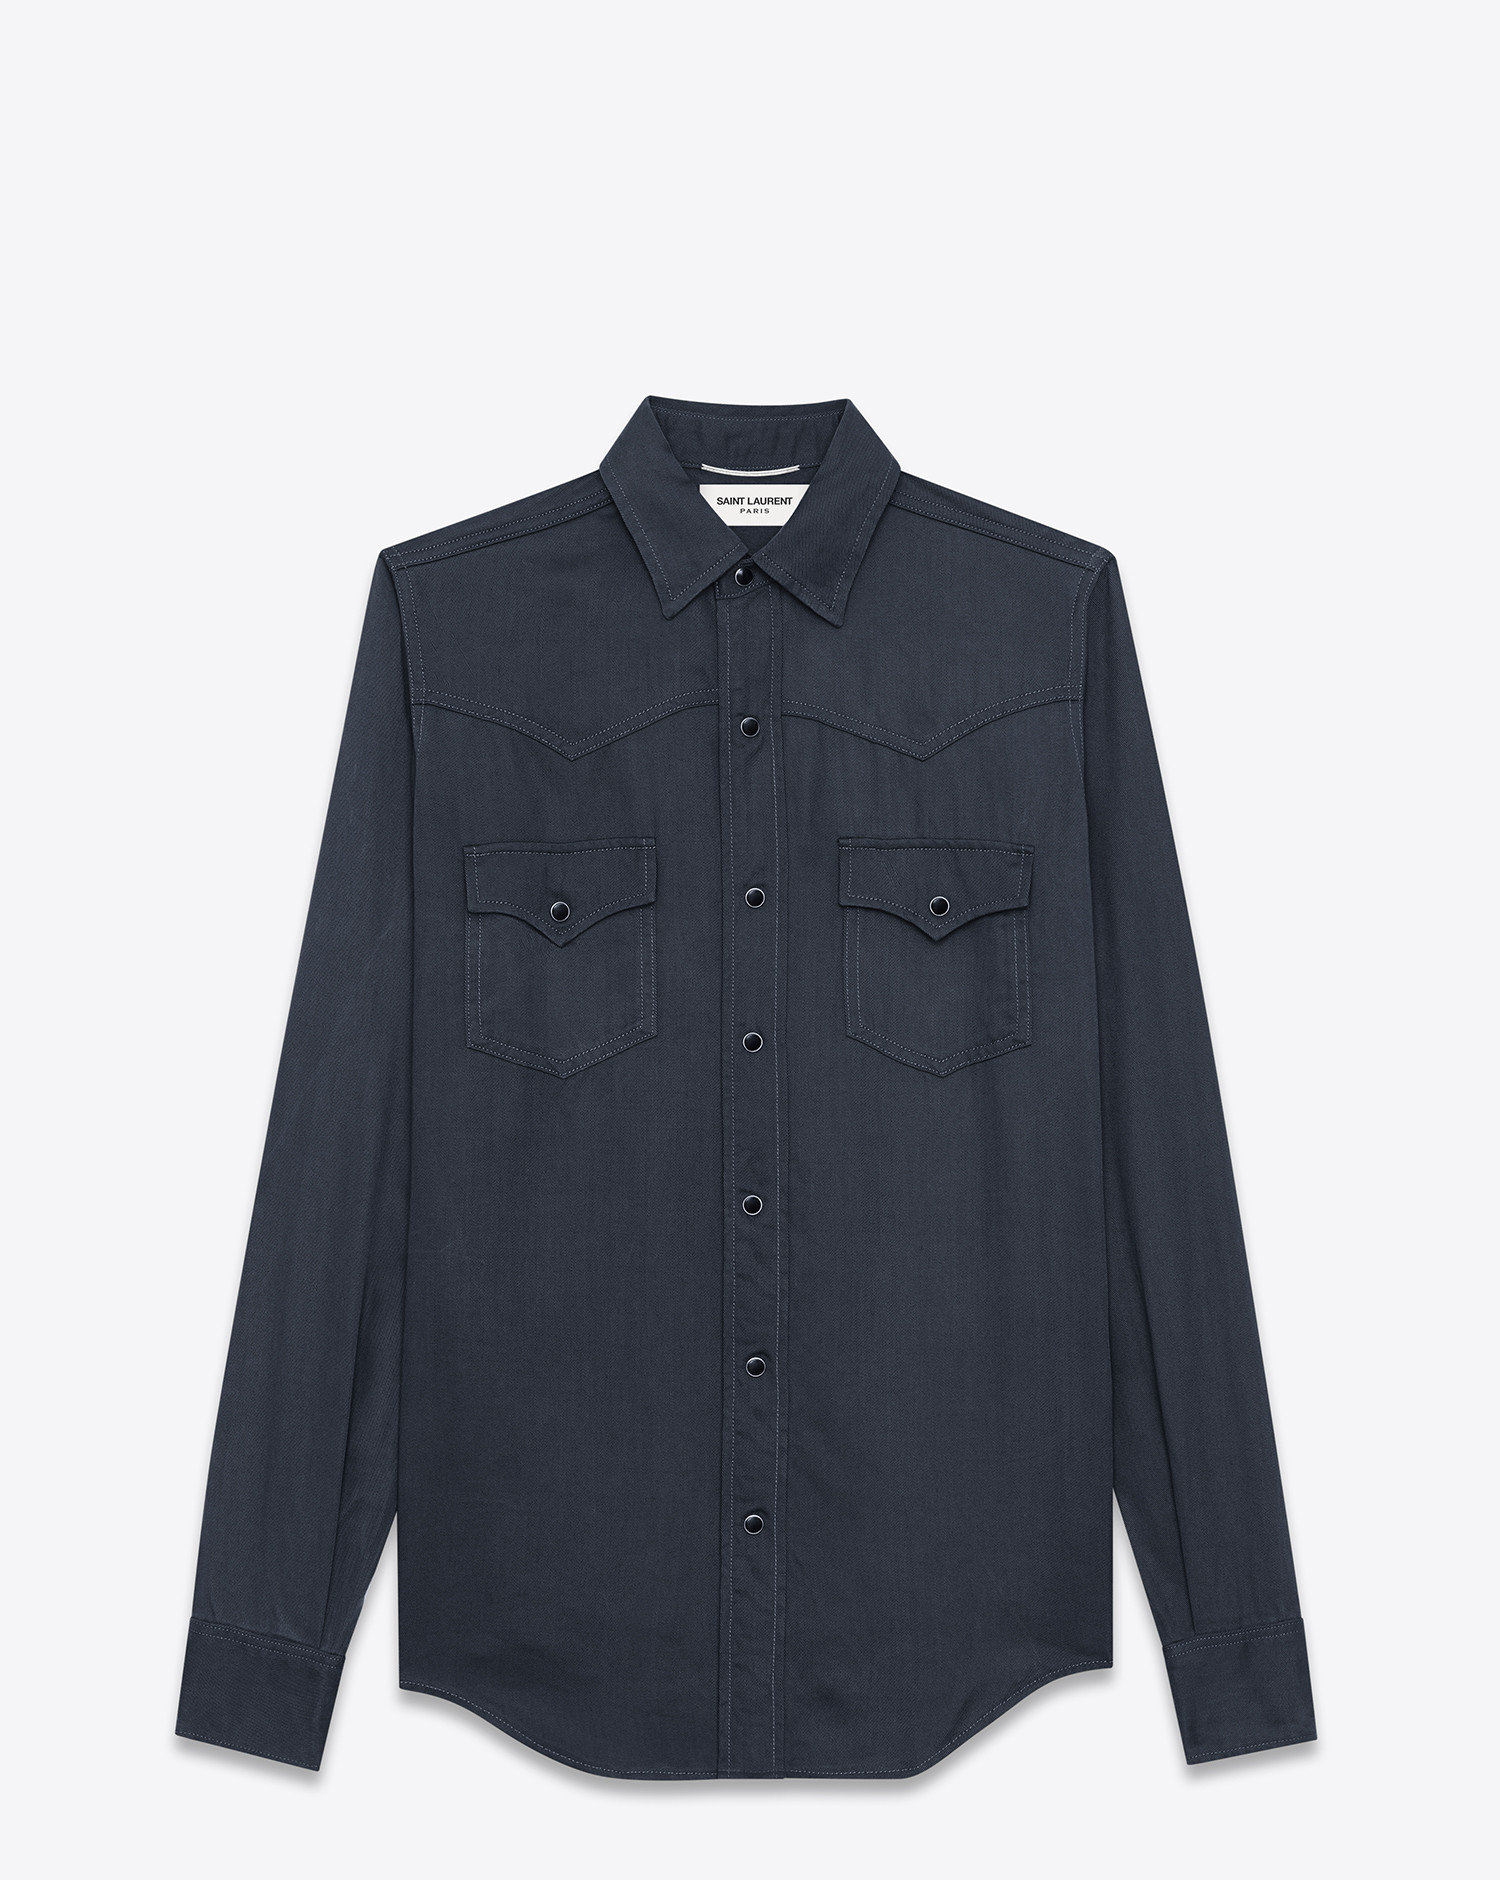 Ysl mens clothing online